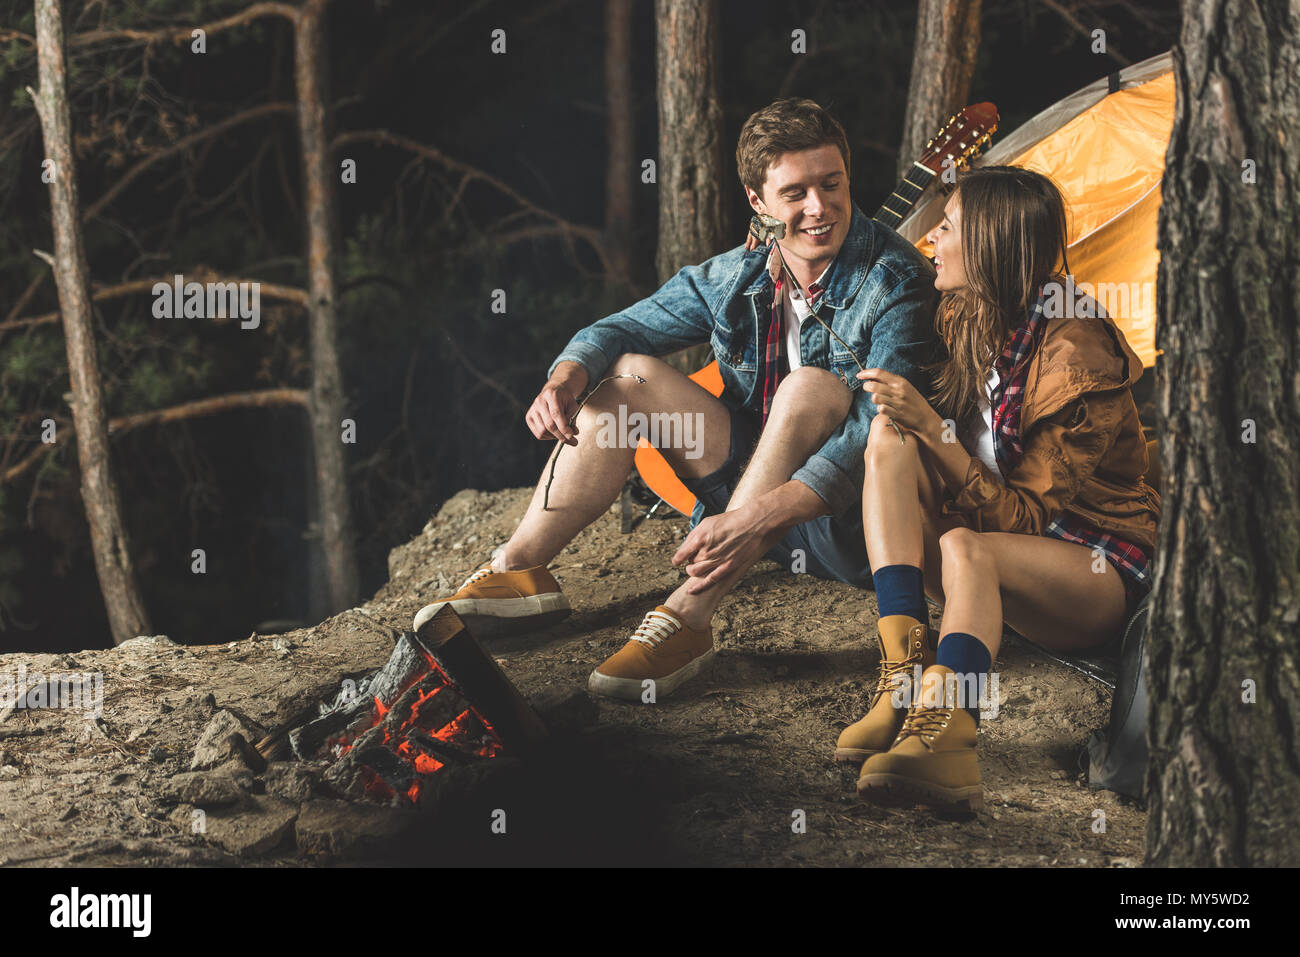 happy couple roasting marshmallow on sticks in camping trip - Stock Image